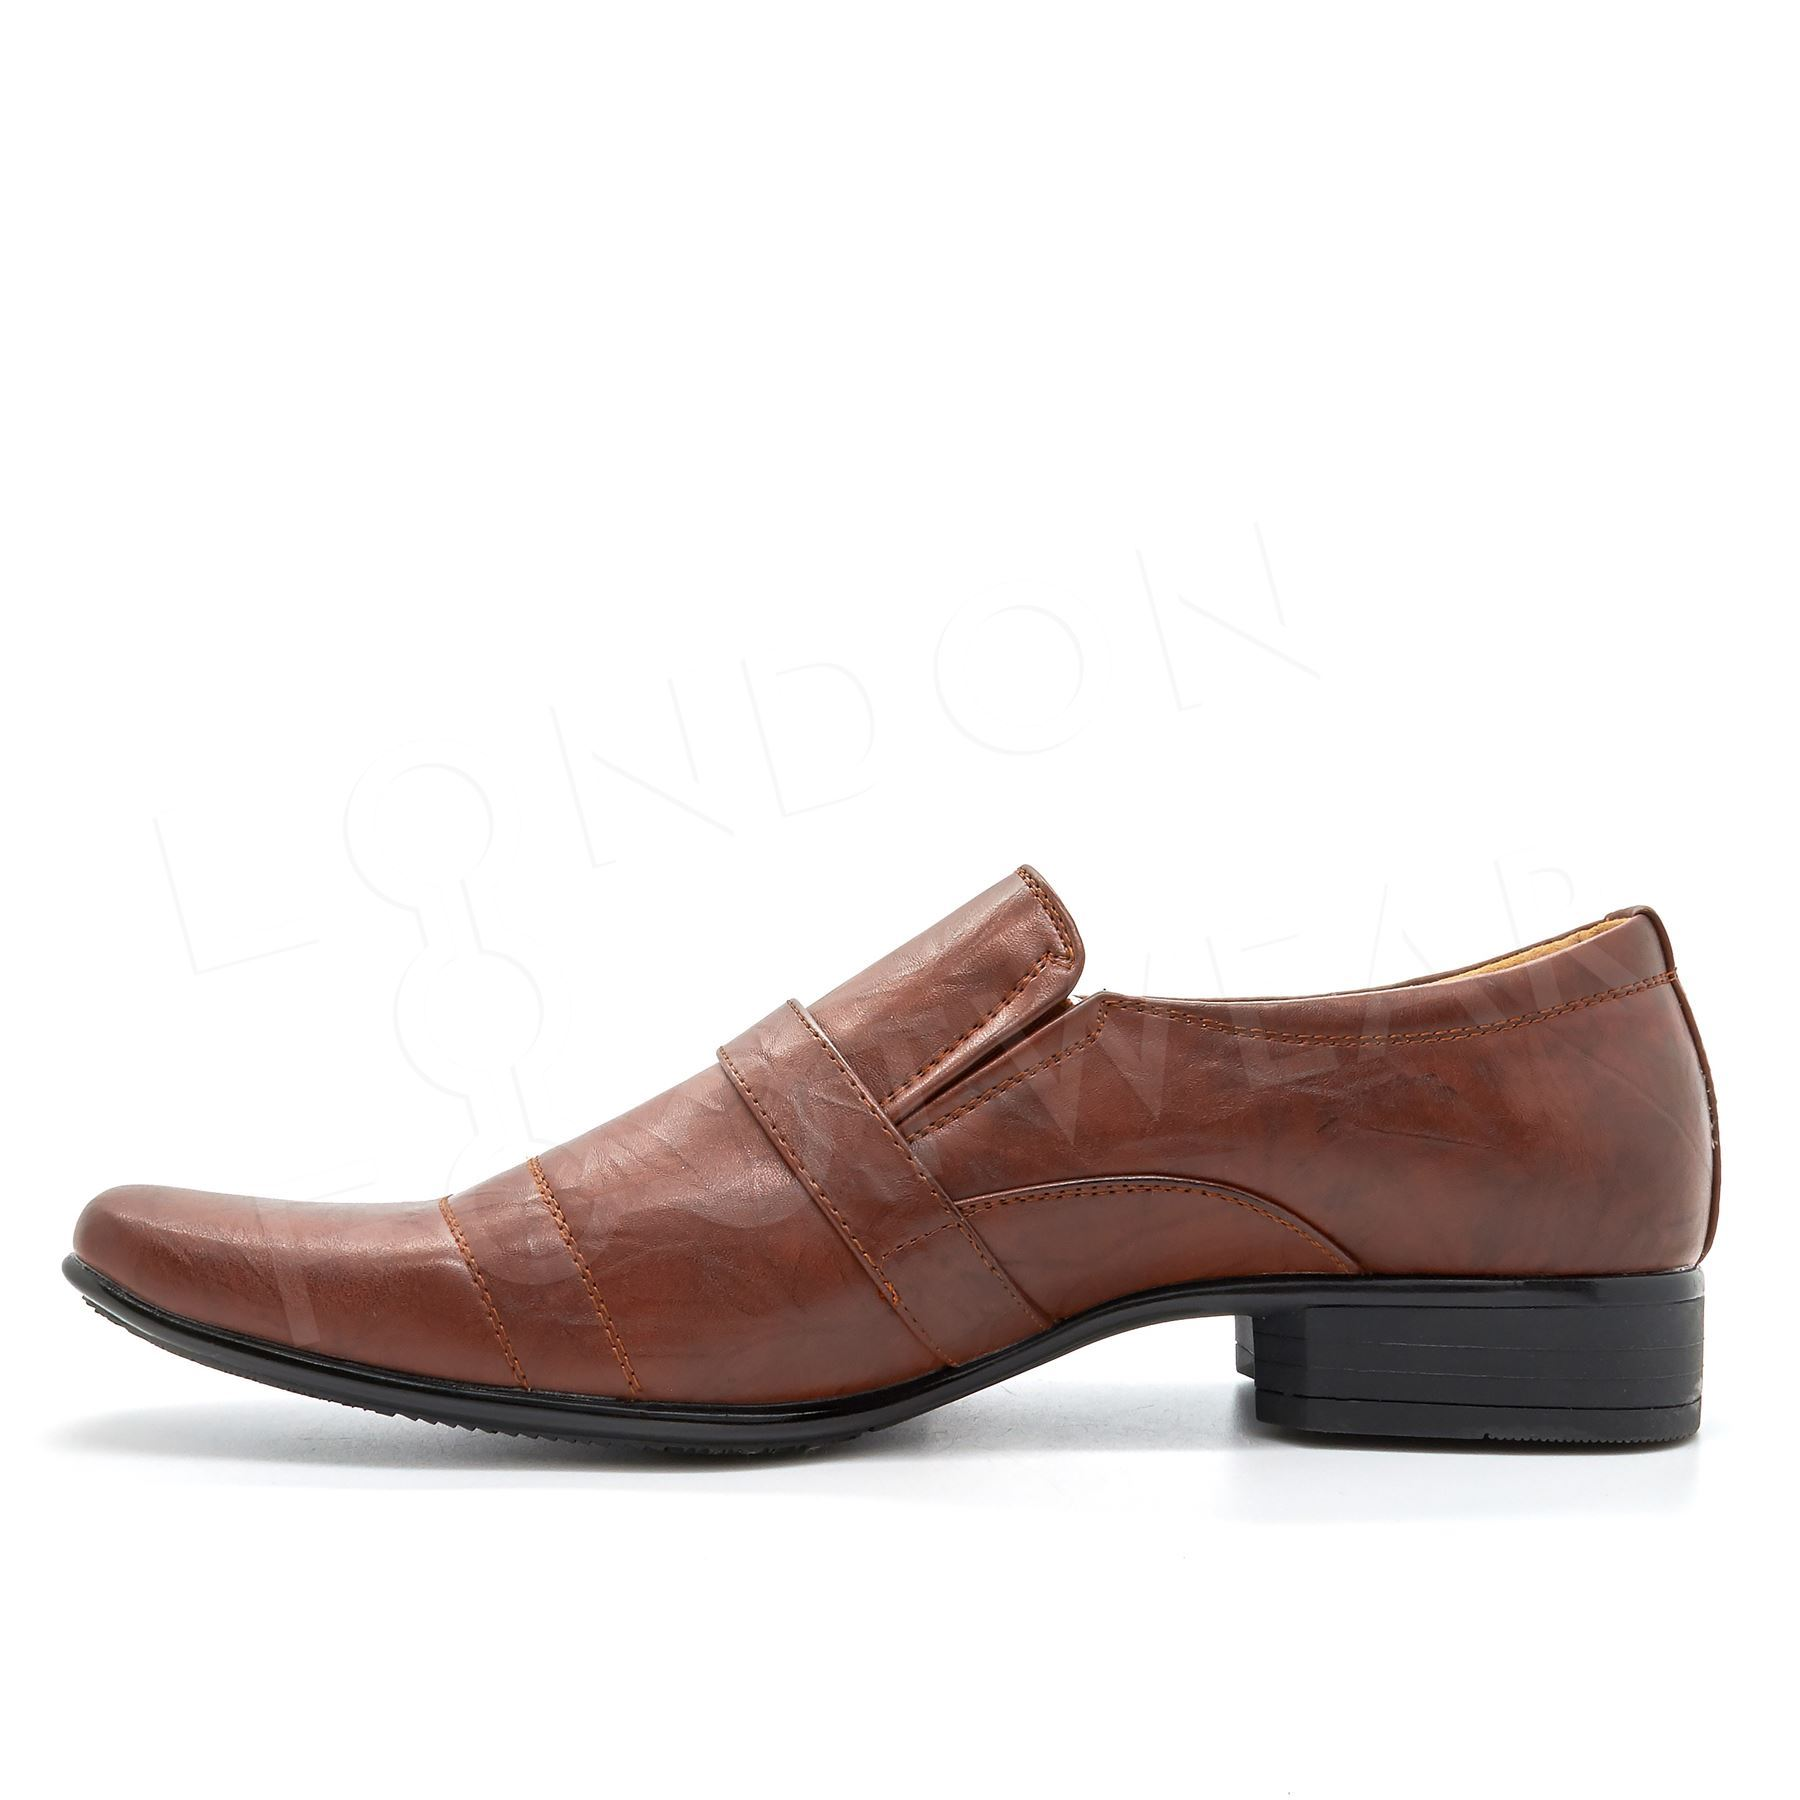 MEN/'S NEW BROWN SHOES SLIP ON SMART FORMAL WEDDING PARTY OFFICE SIZES 6-11 UK